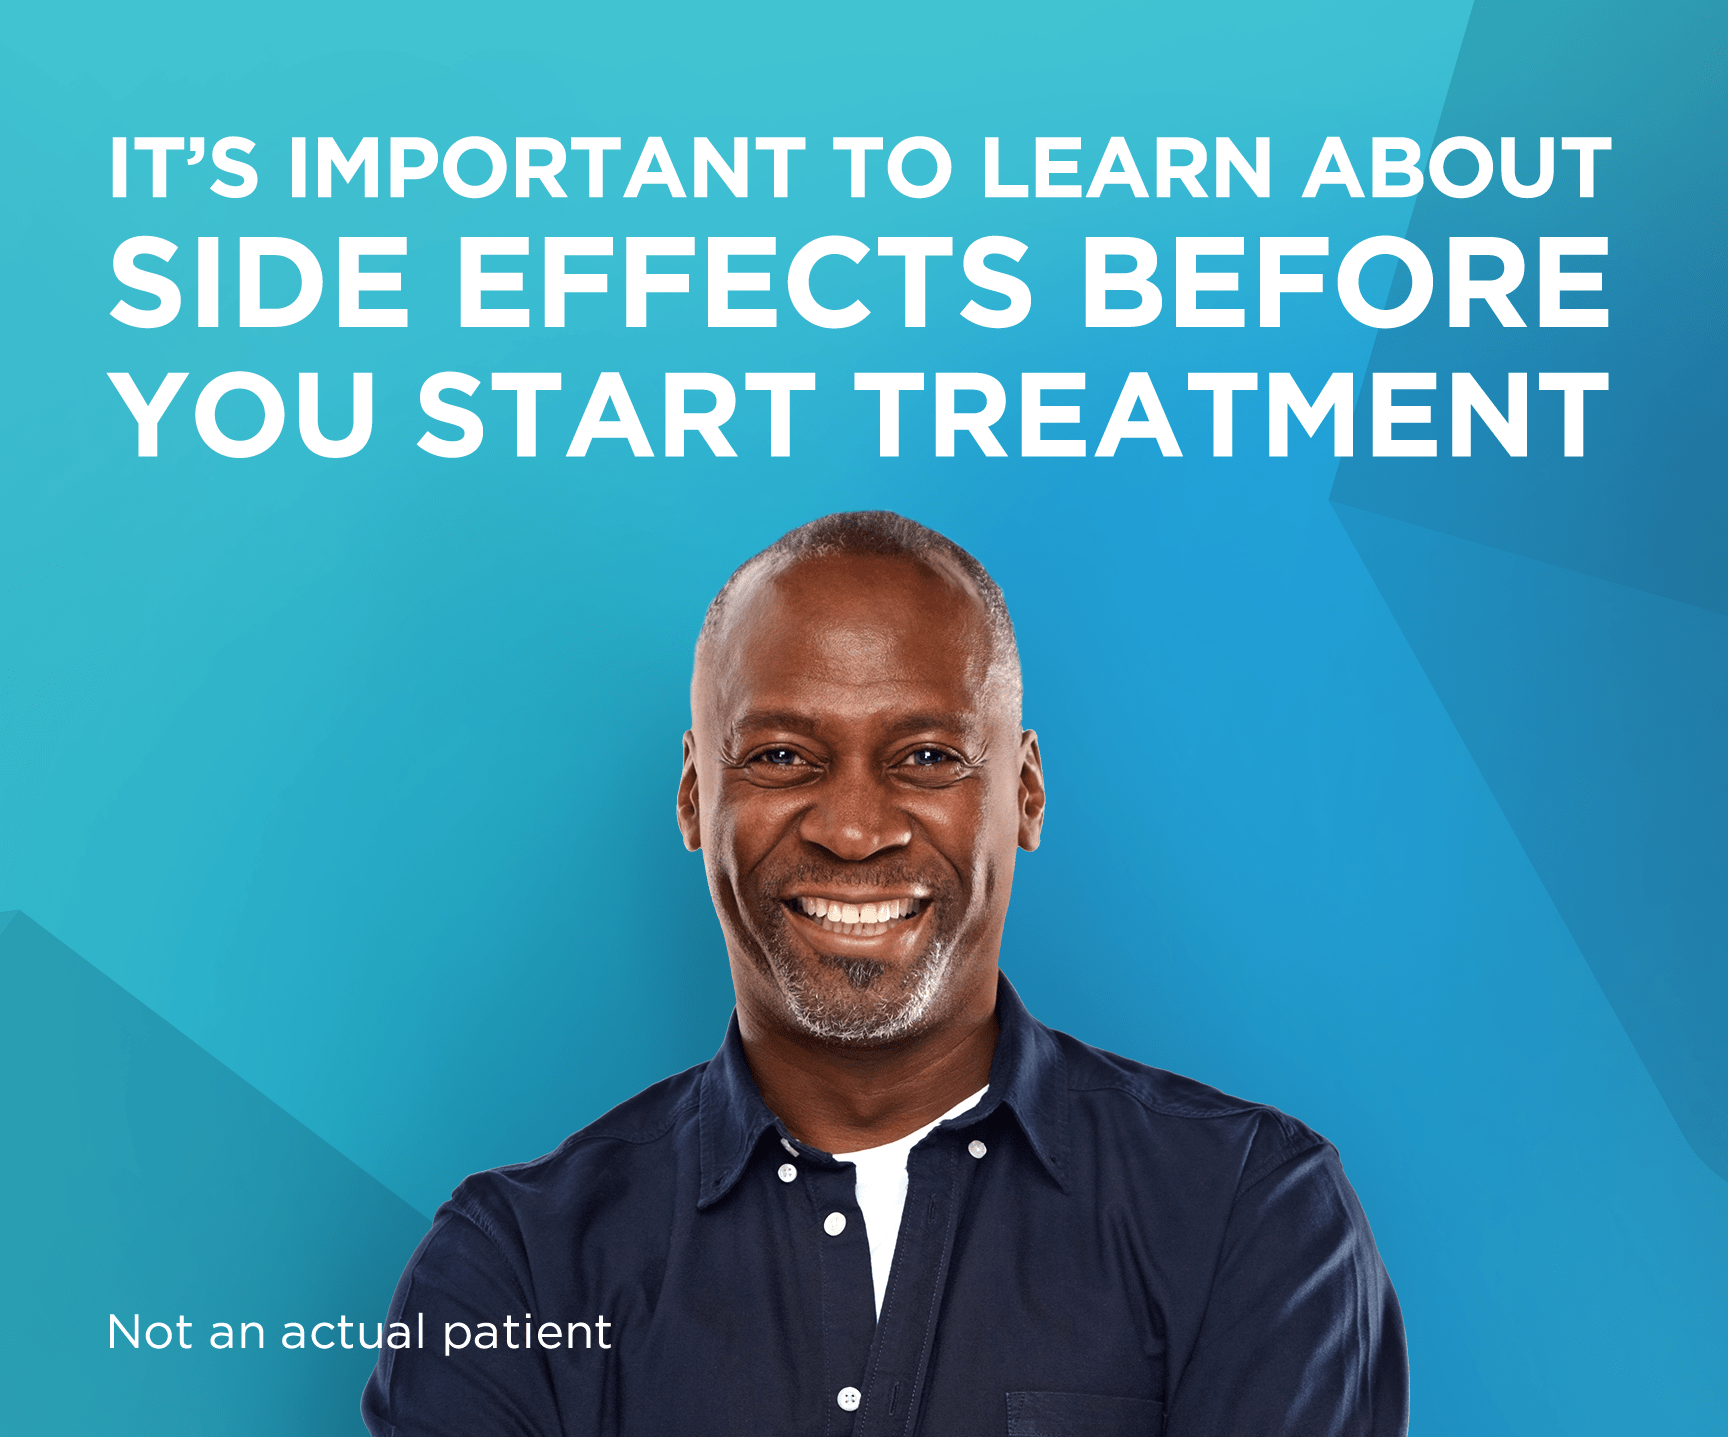 It's important to learn about side effects before you start treatment